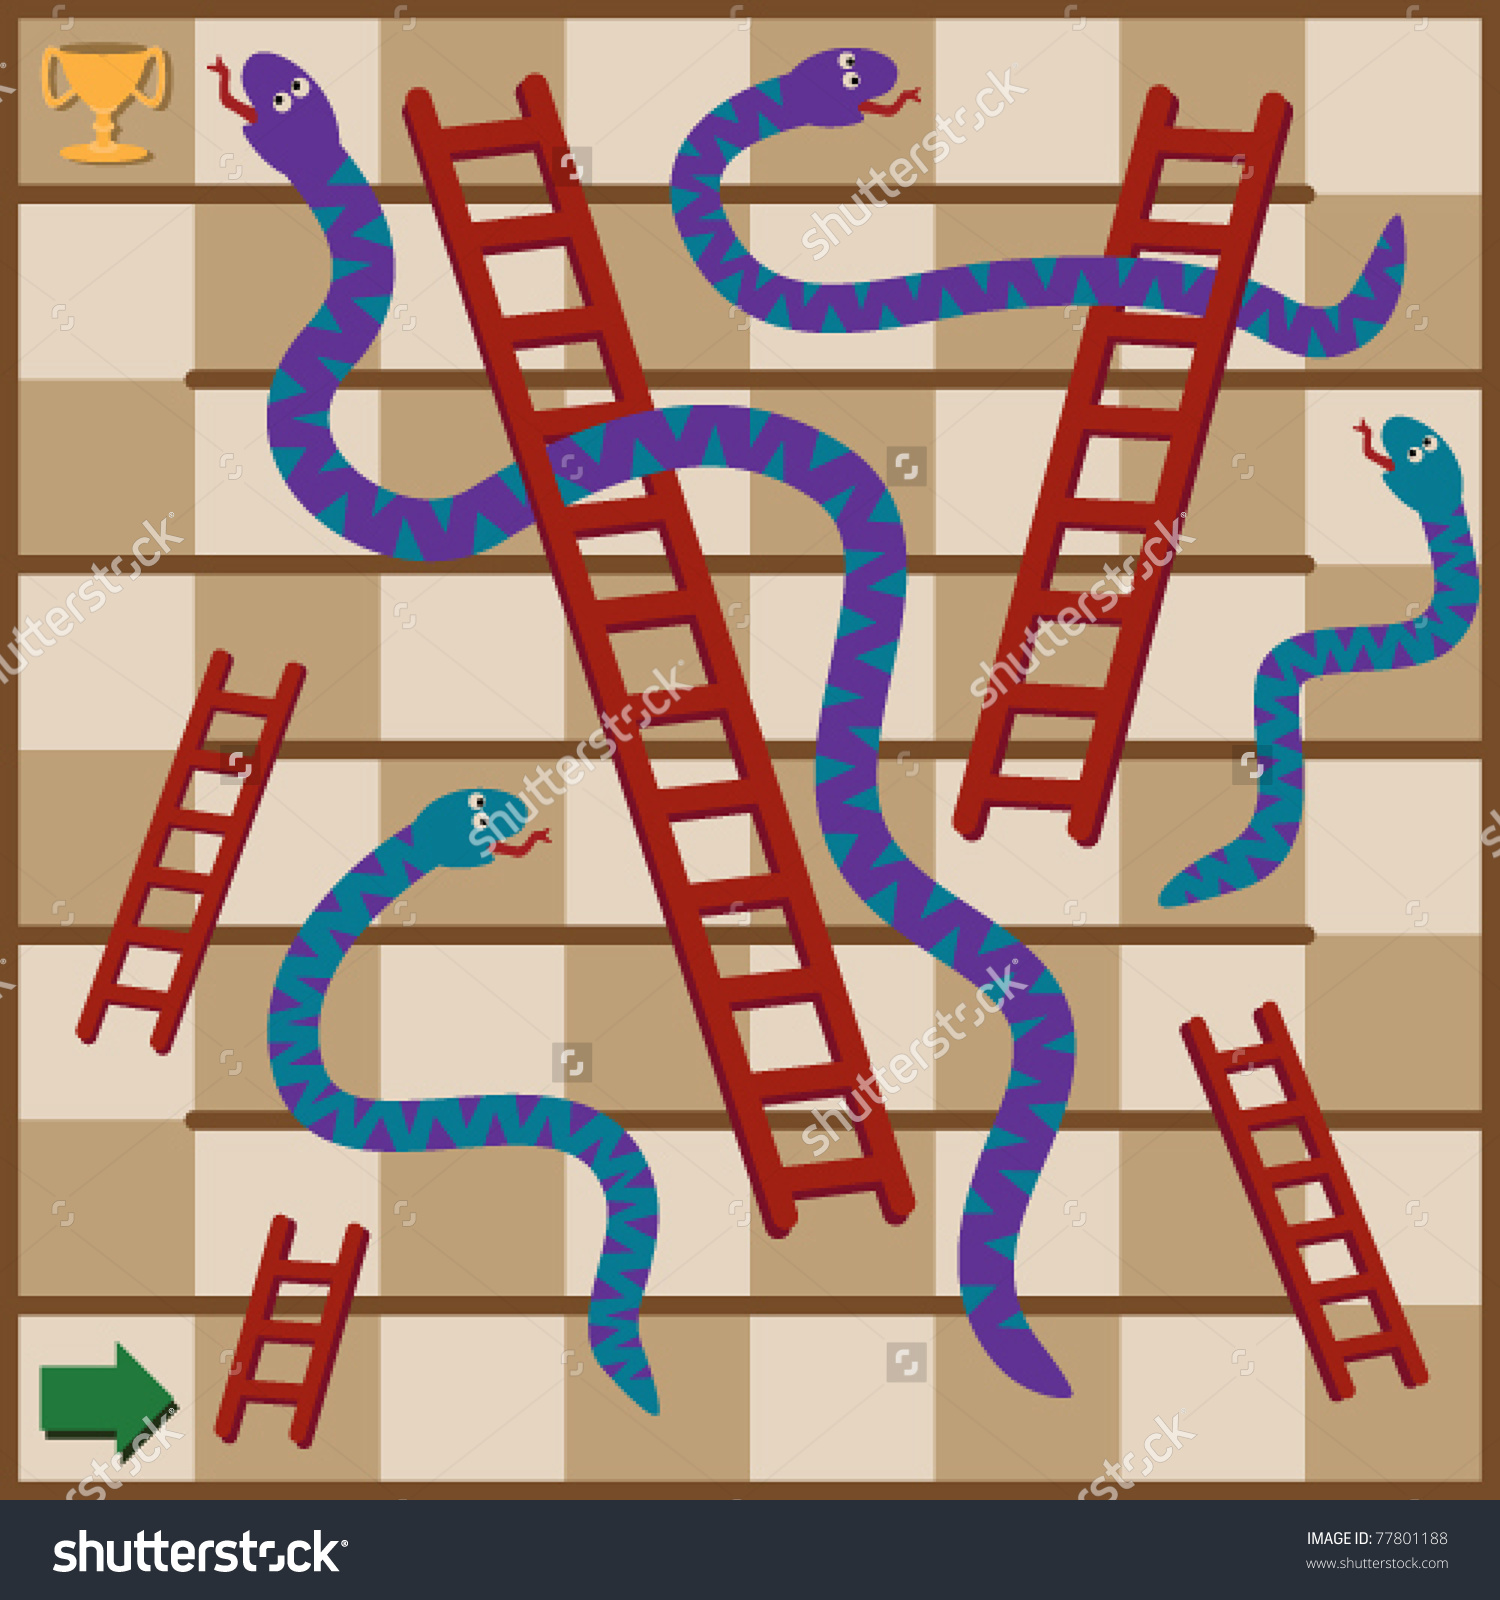 Snakes Ladders Board Game Snakes Ladders Stock Vector 77801188.